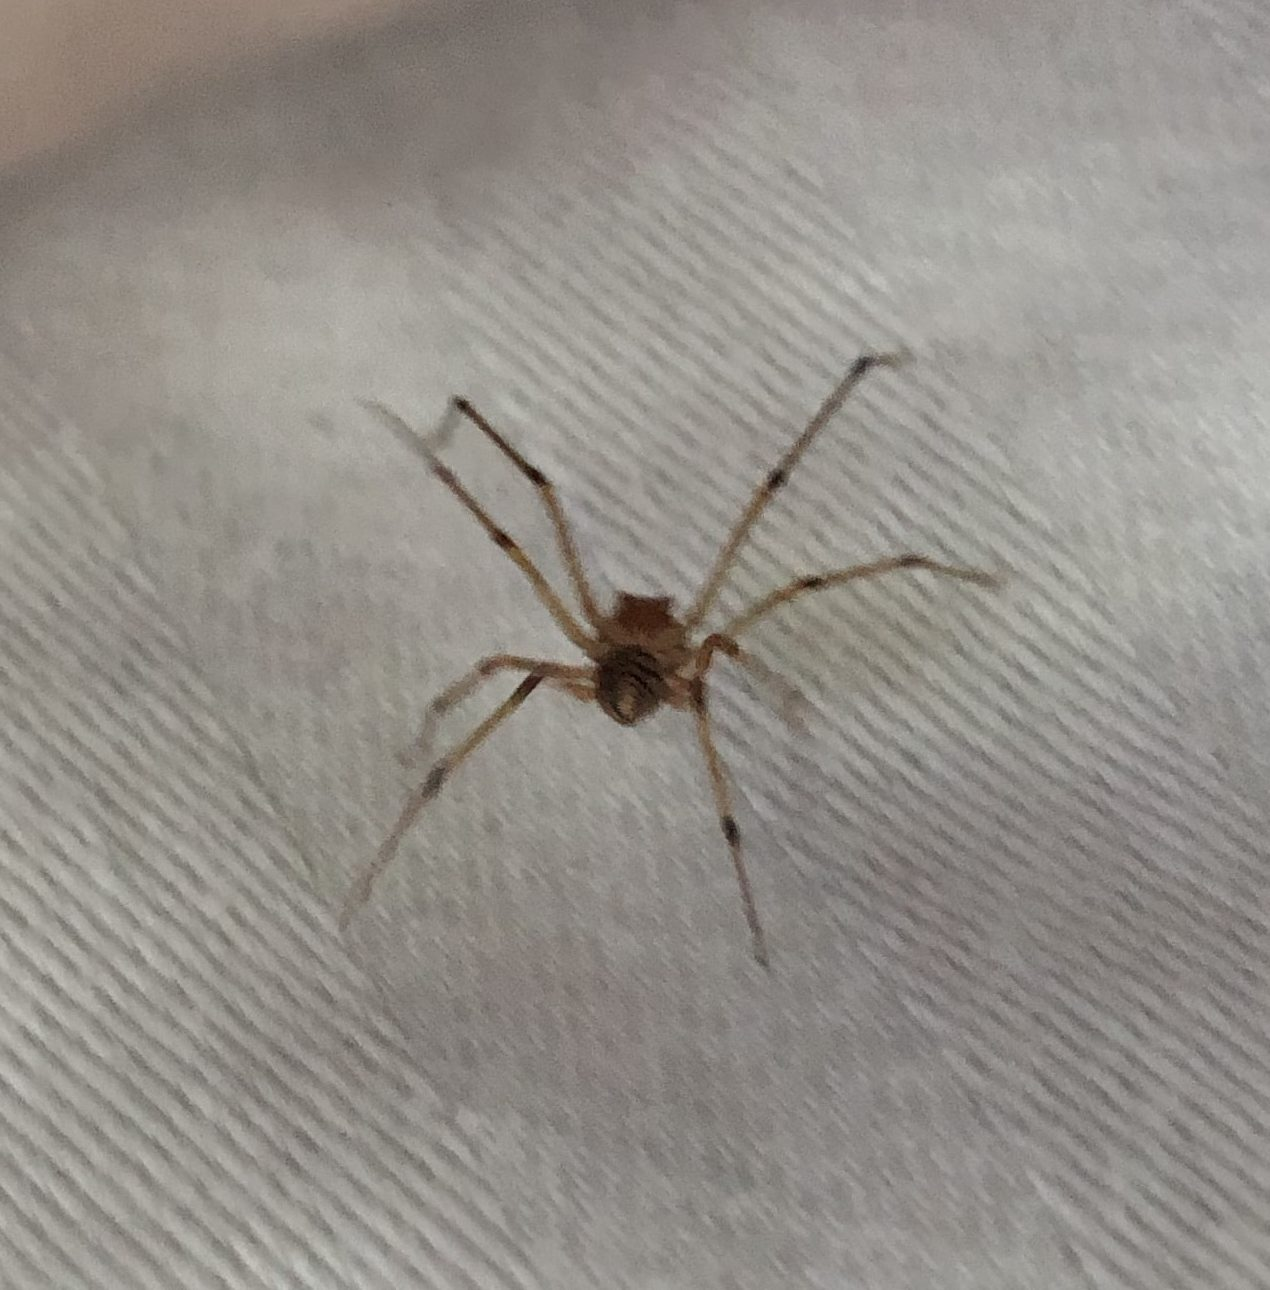 Picture of Scytodes